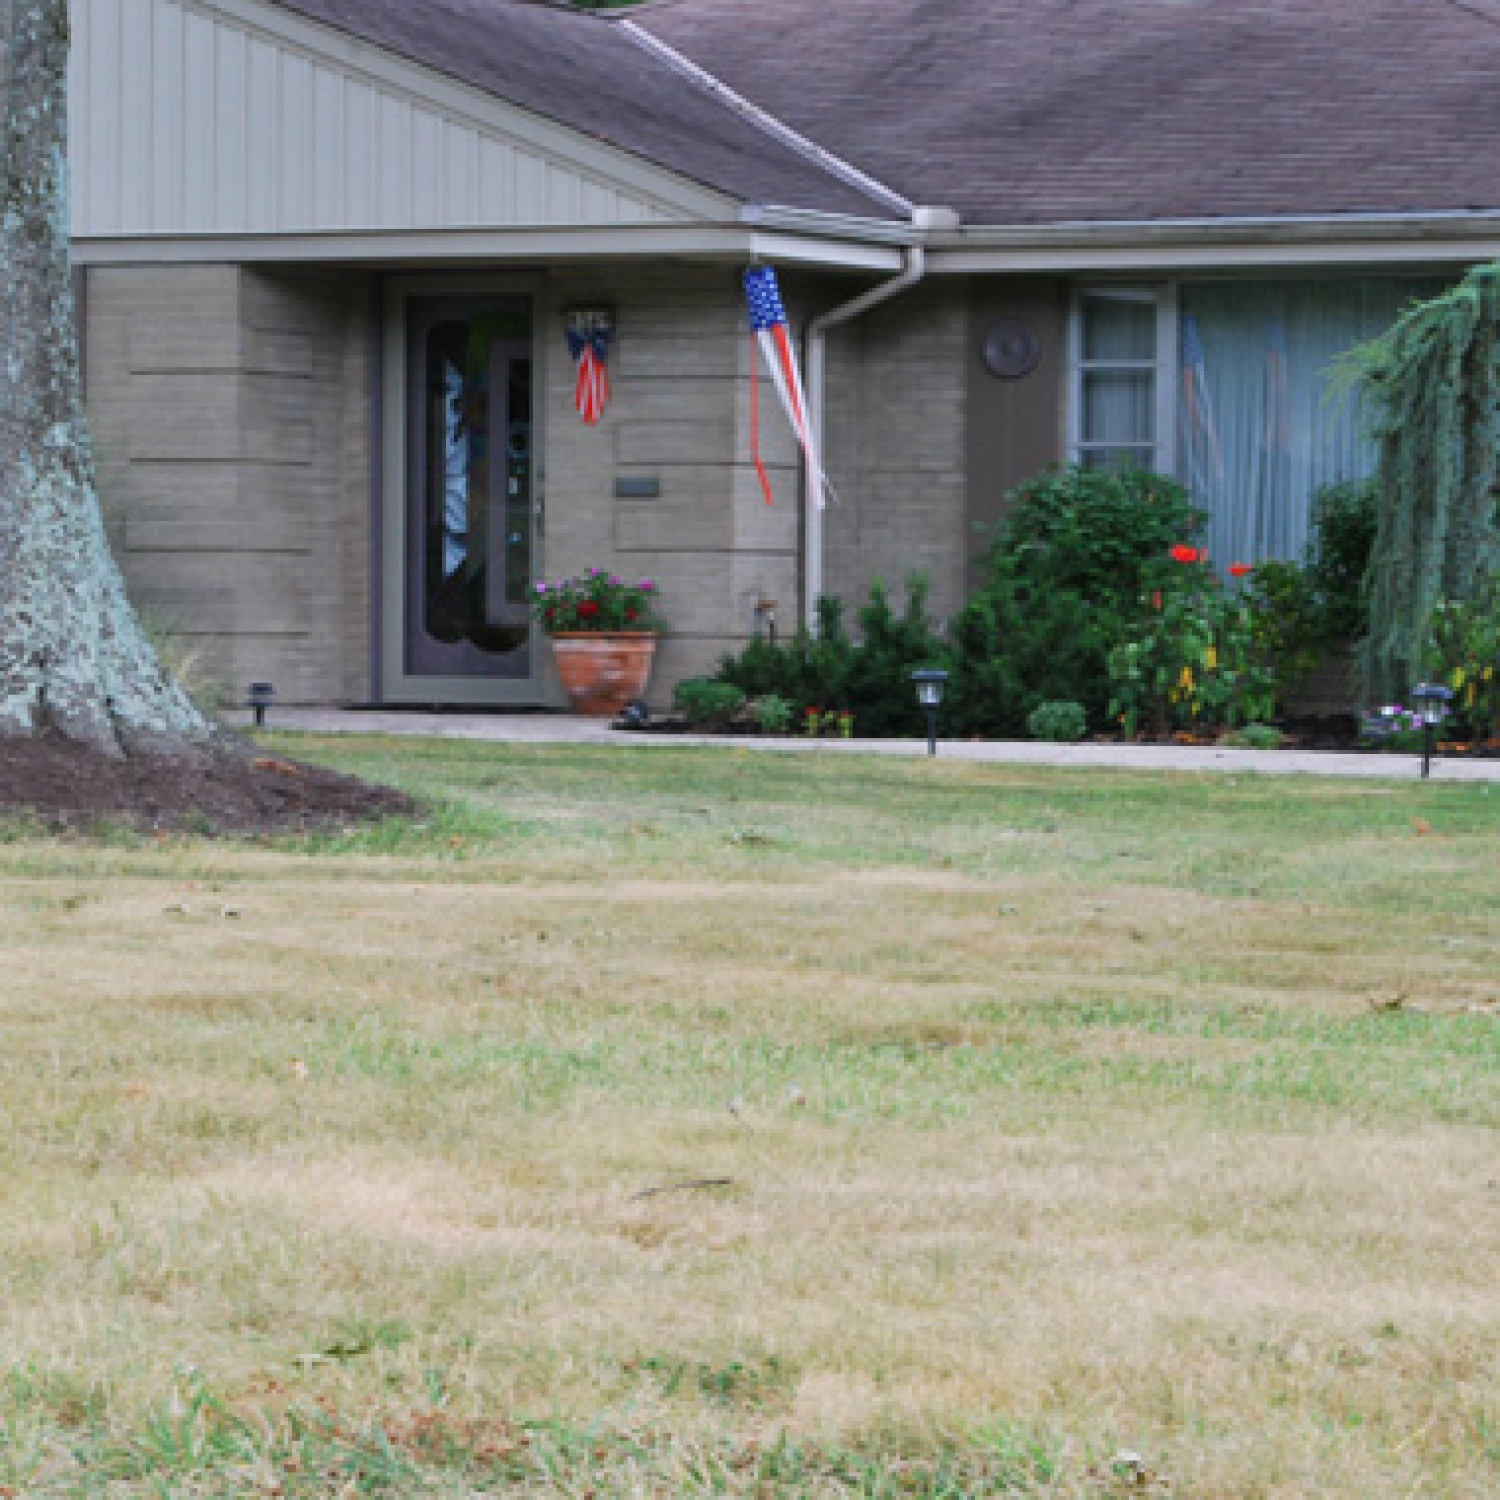 Brown grass in a front lawn